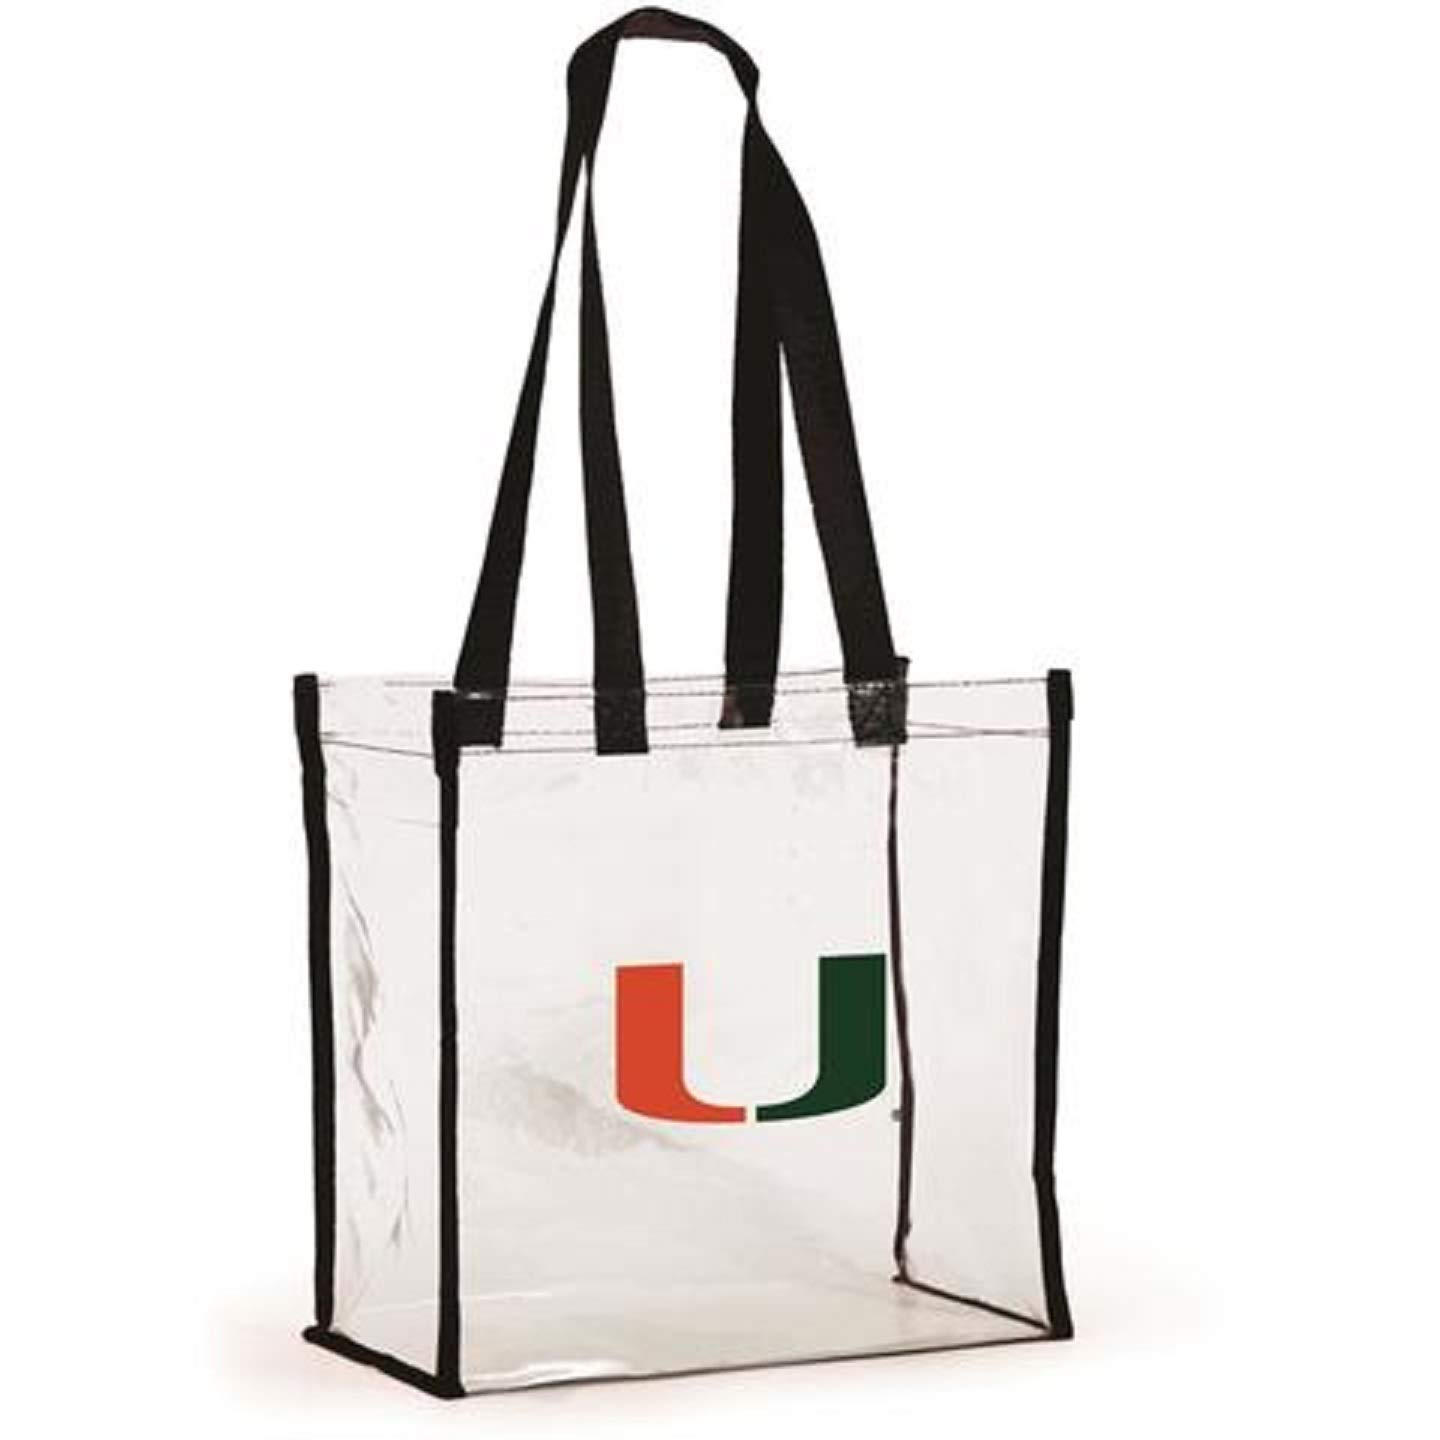 Clear with Long Handles for University of Miami Hurricanes Fans. Desden Style 214 Open Top Stadium Tote